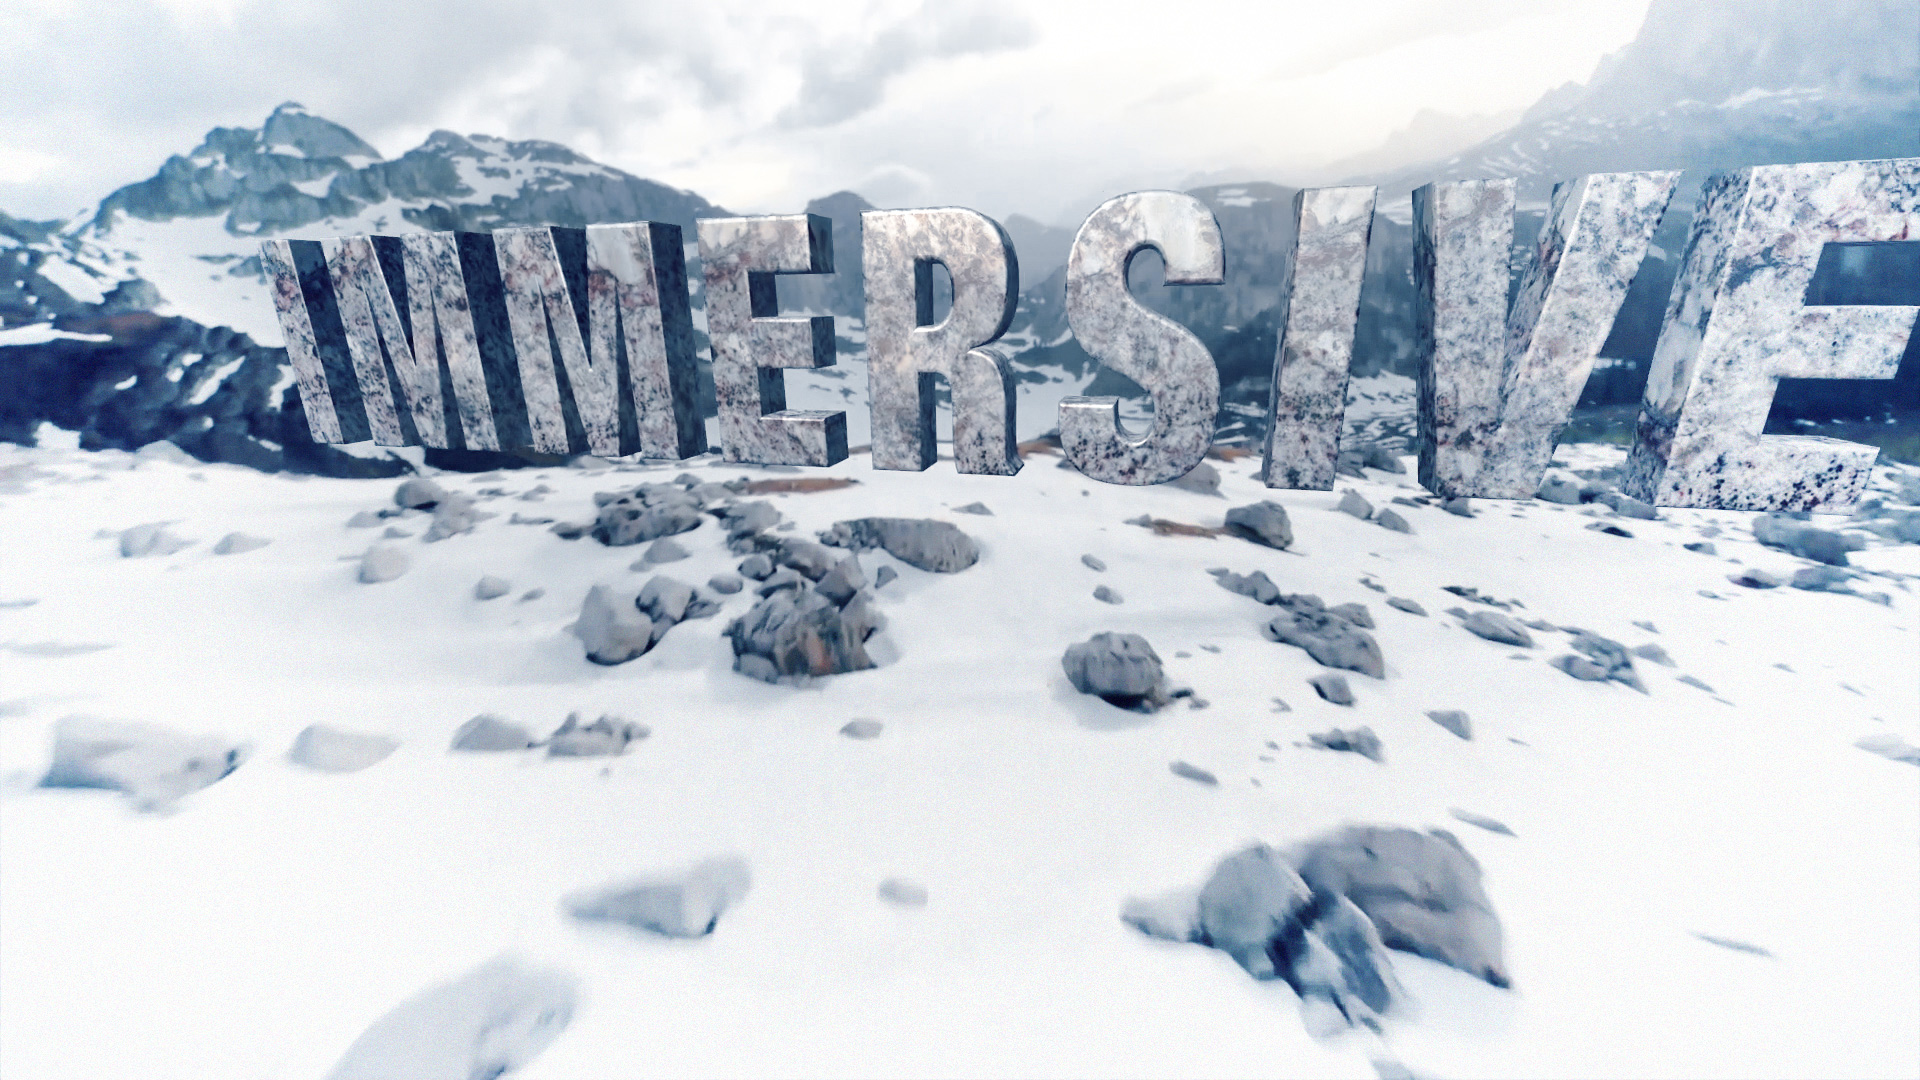 """The word """"Immersive"""" in 3D composted into a dynamically moving, snow-covered mountain scene."""